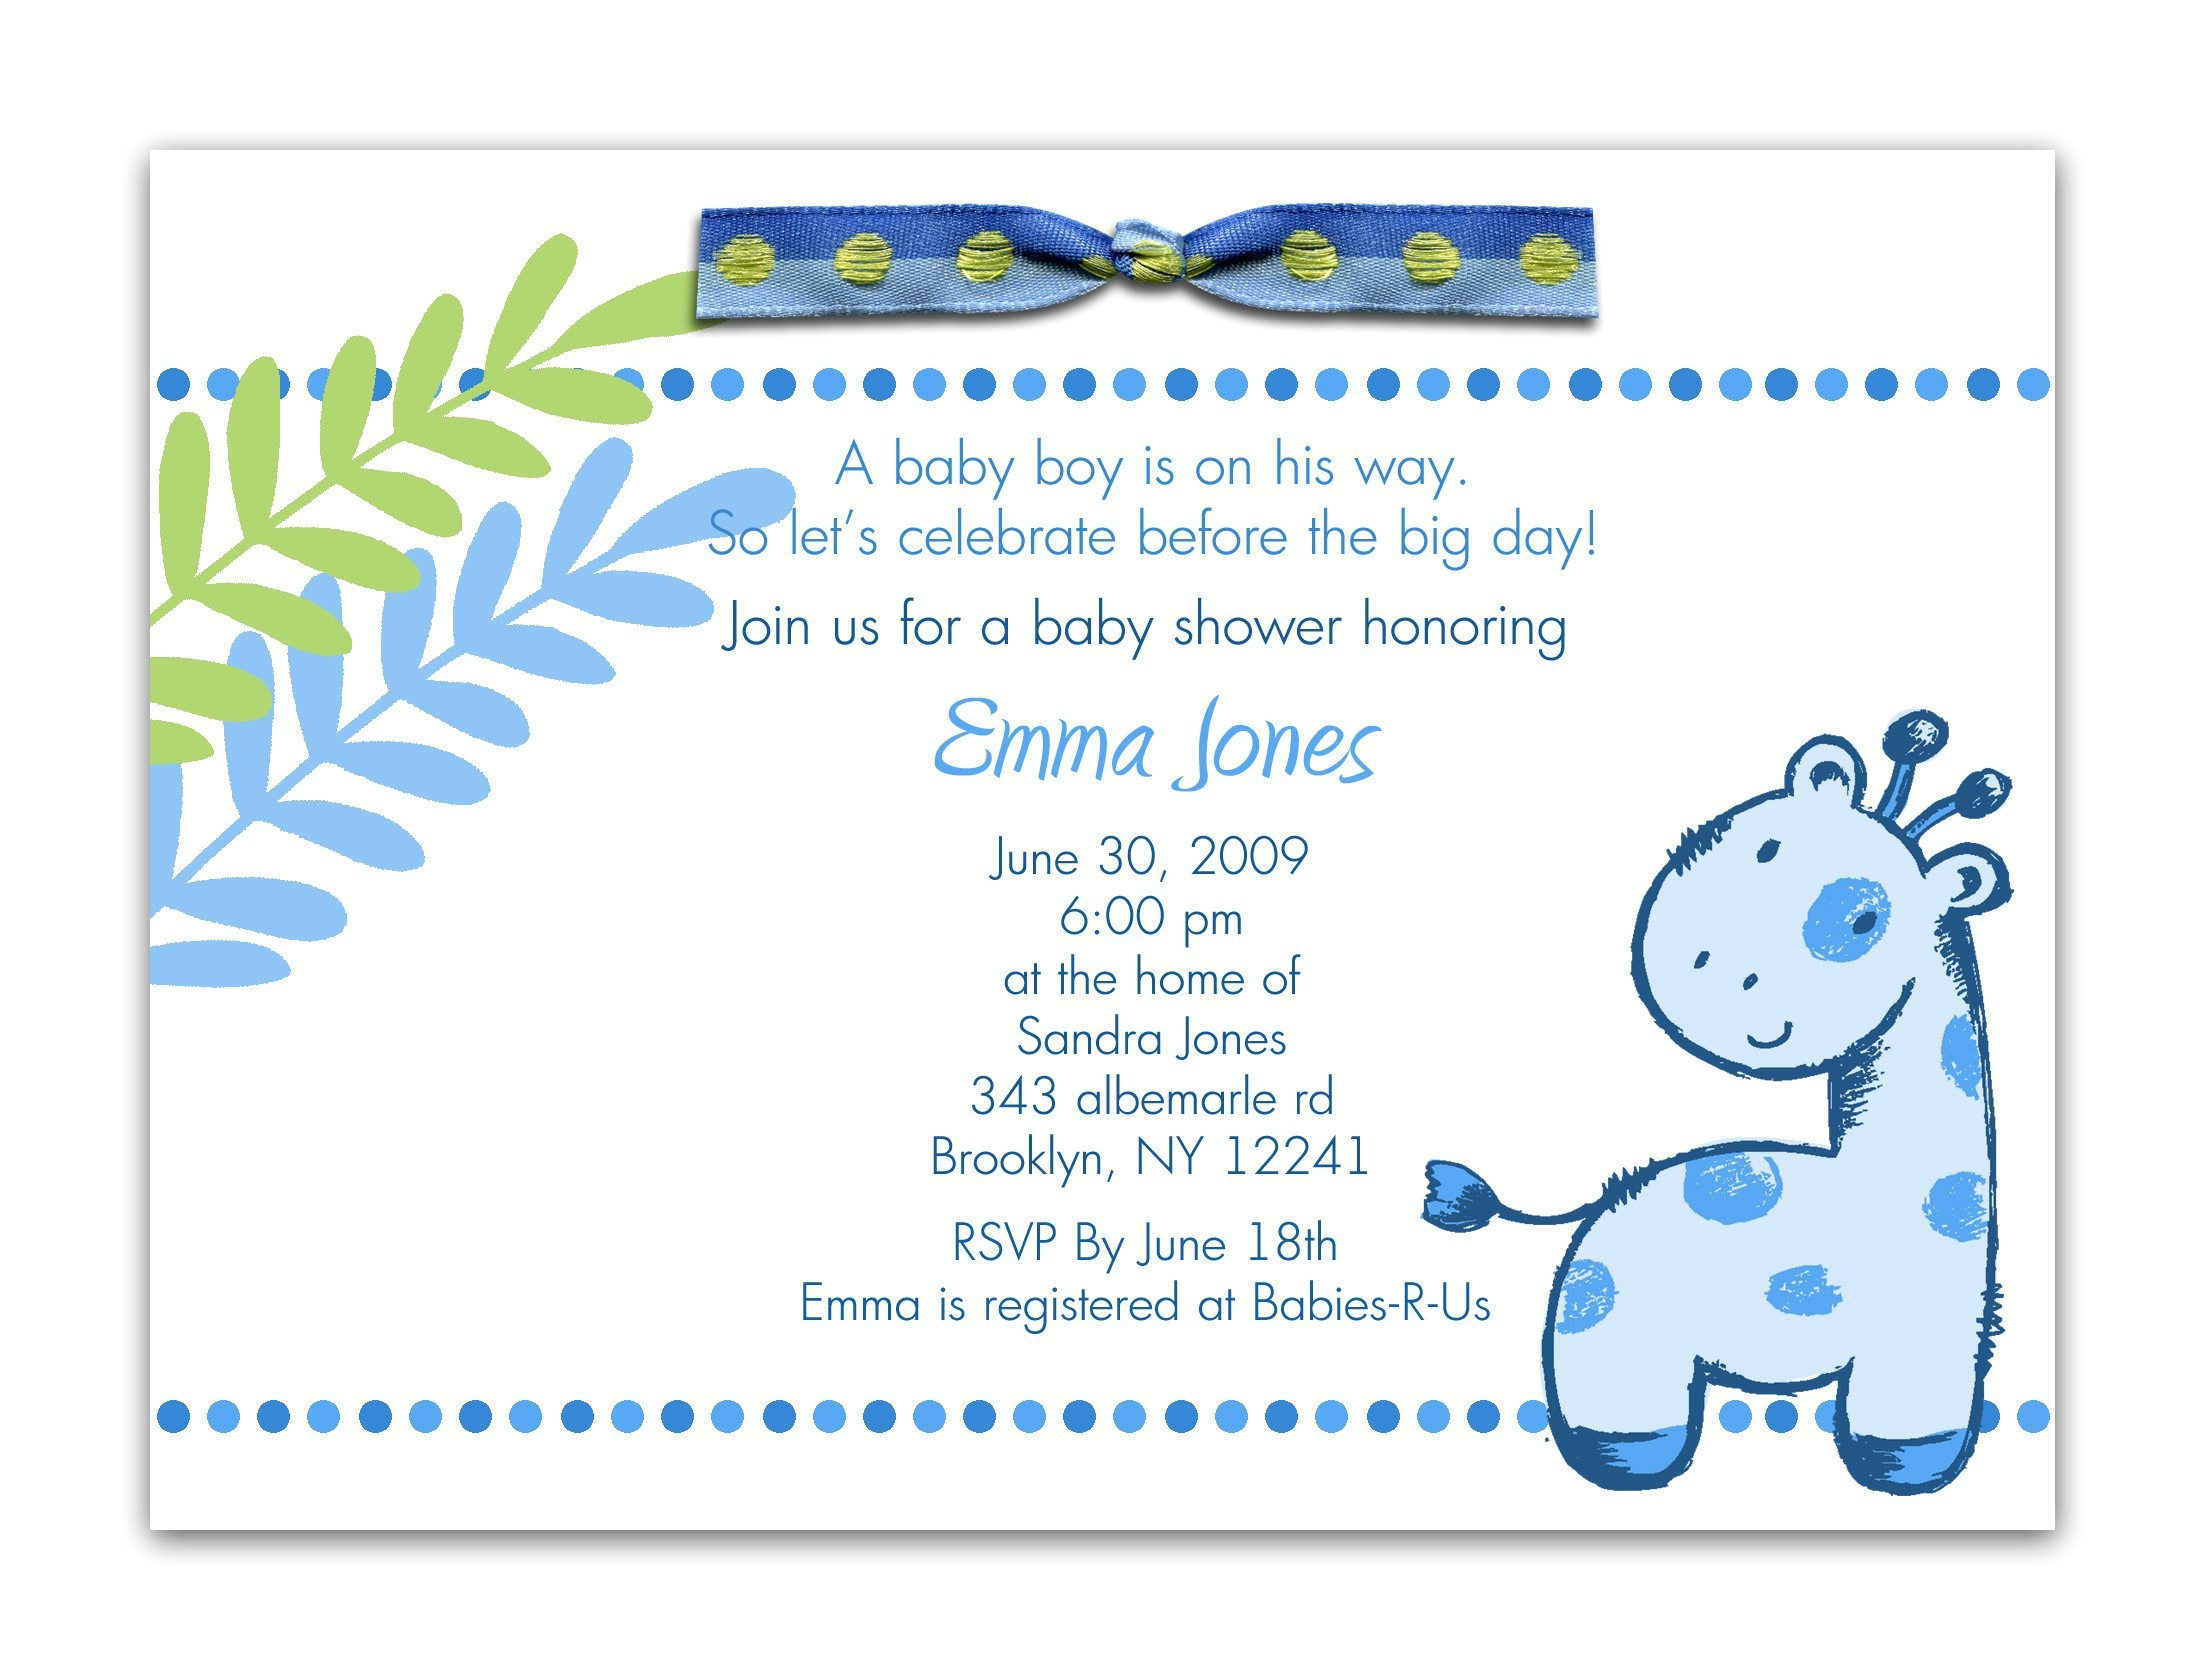 Language for Baby Shower Invitation Baby Shower Invitation Baby Shower Invitation Wording